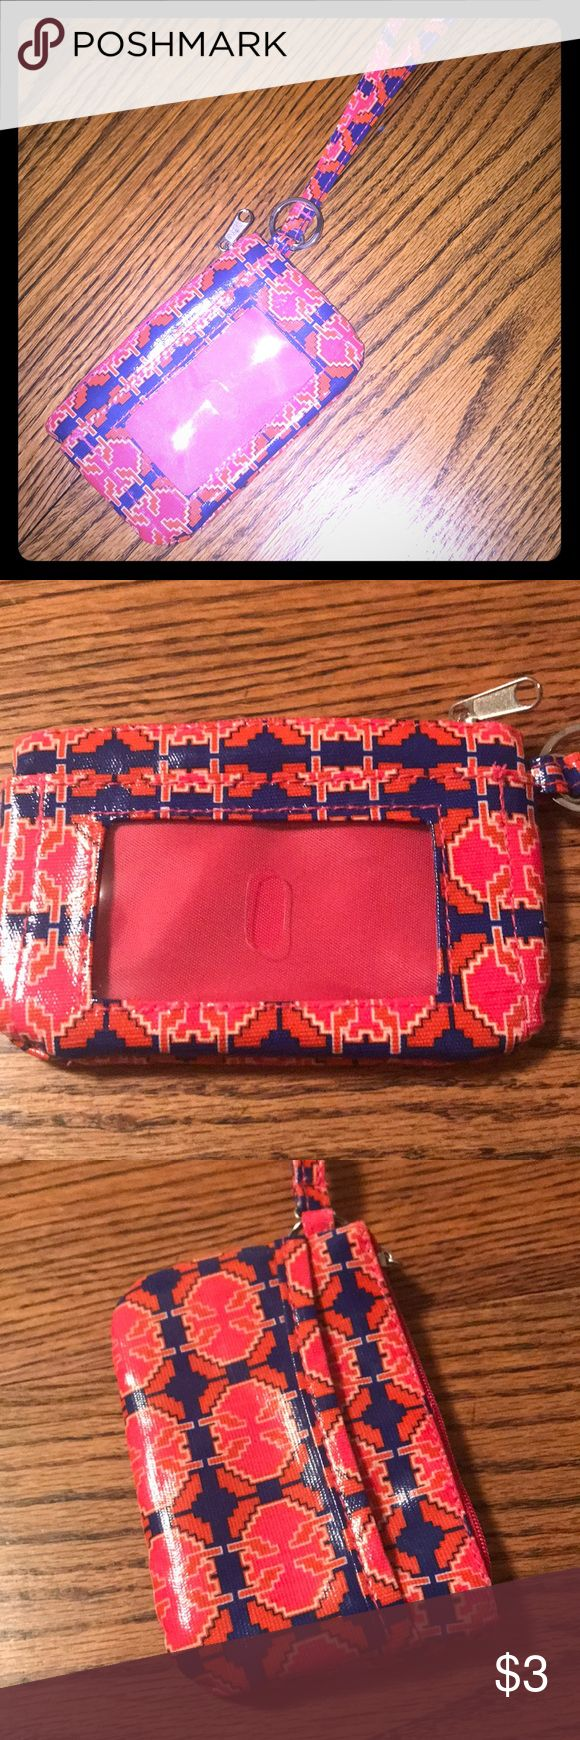 ID Holder/ Wallet Small pouch, brand new Bags Clutches & Wristlets